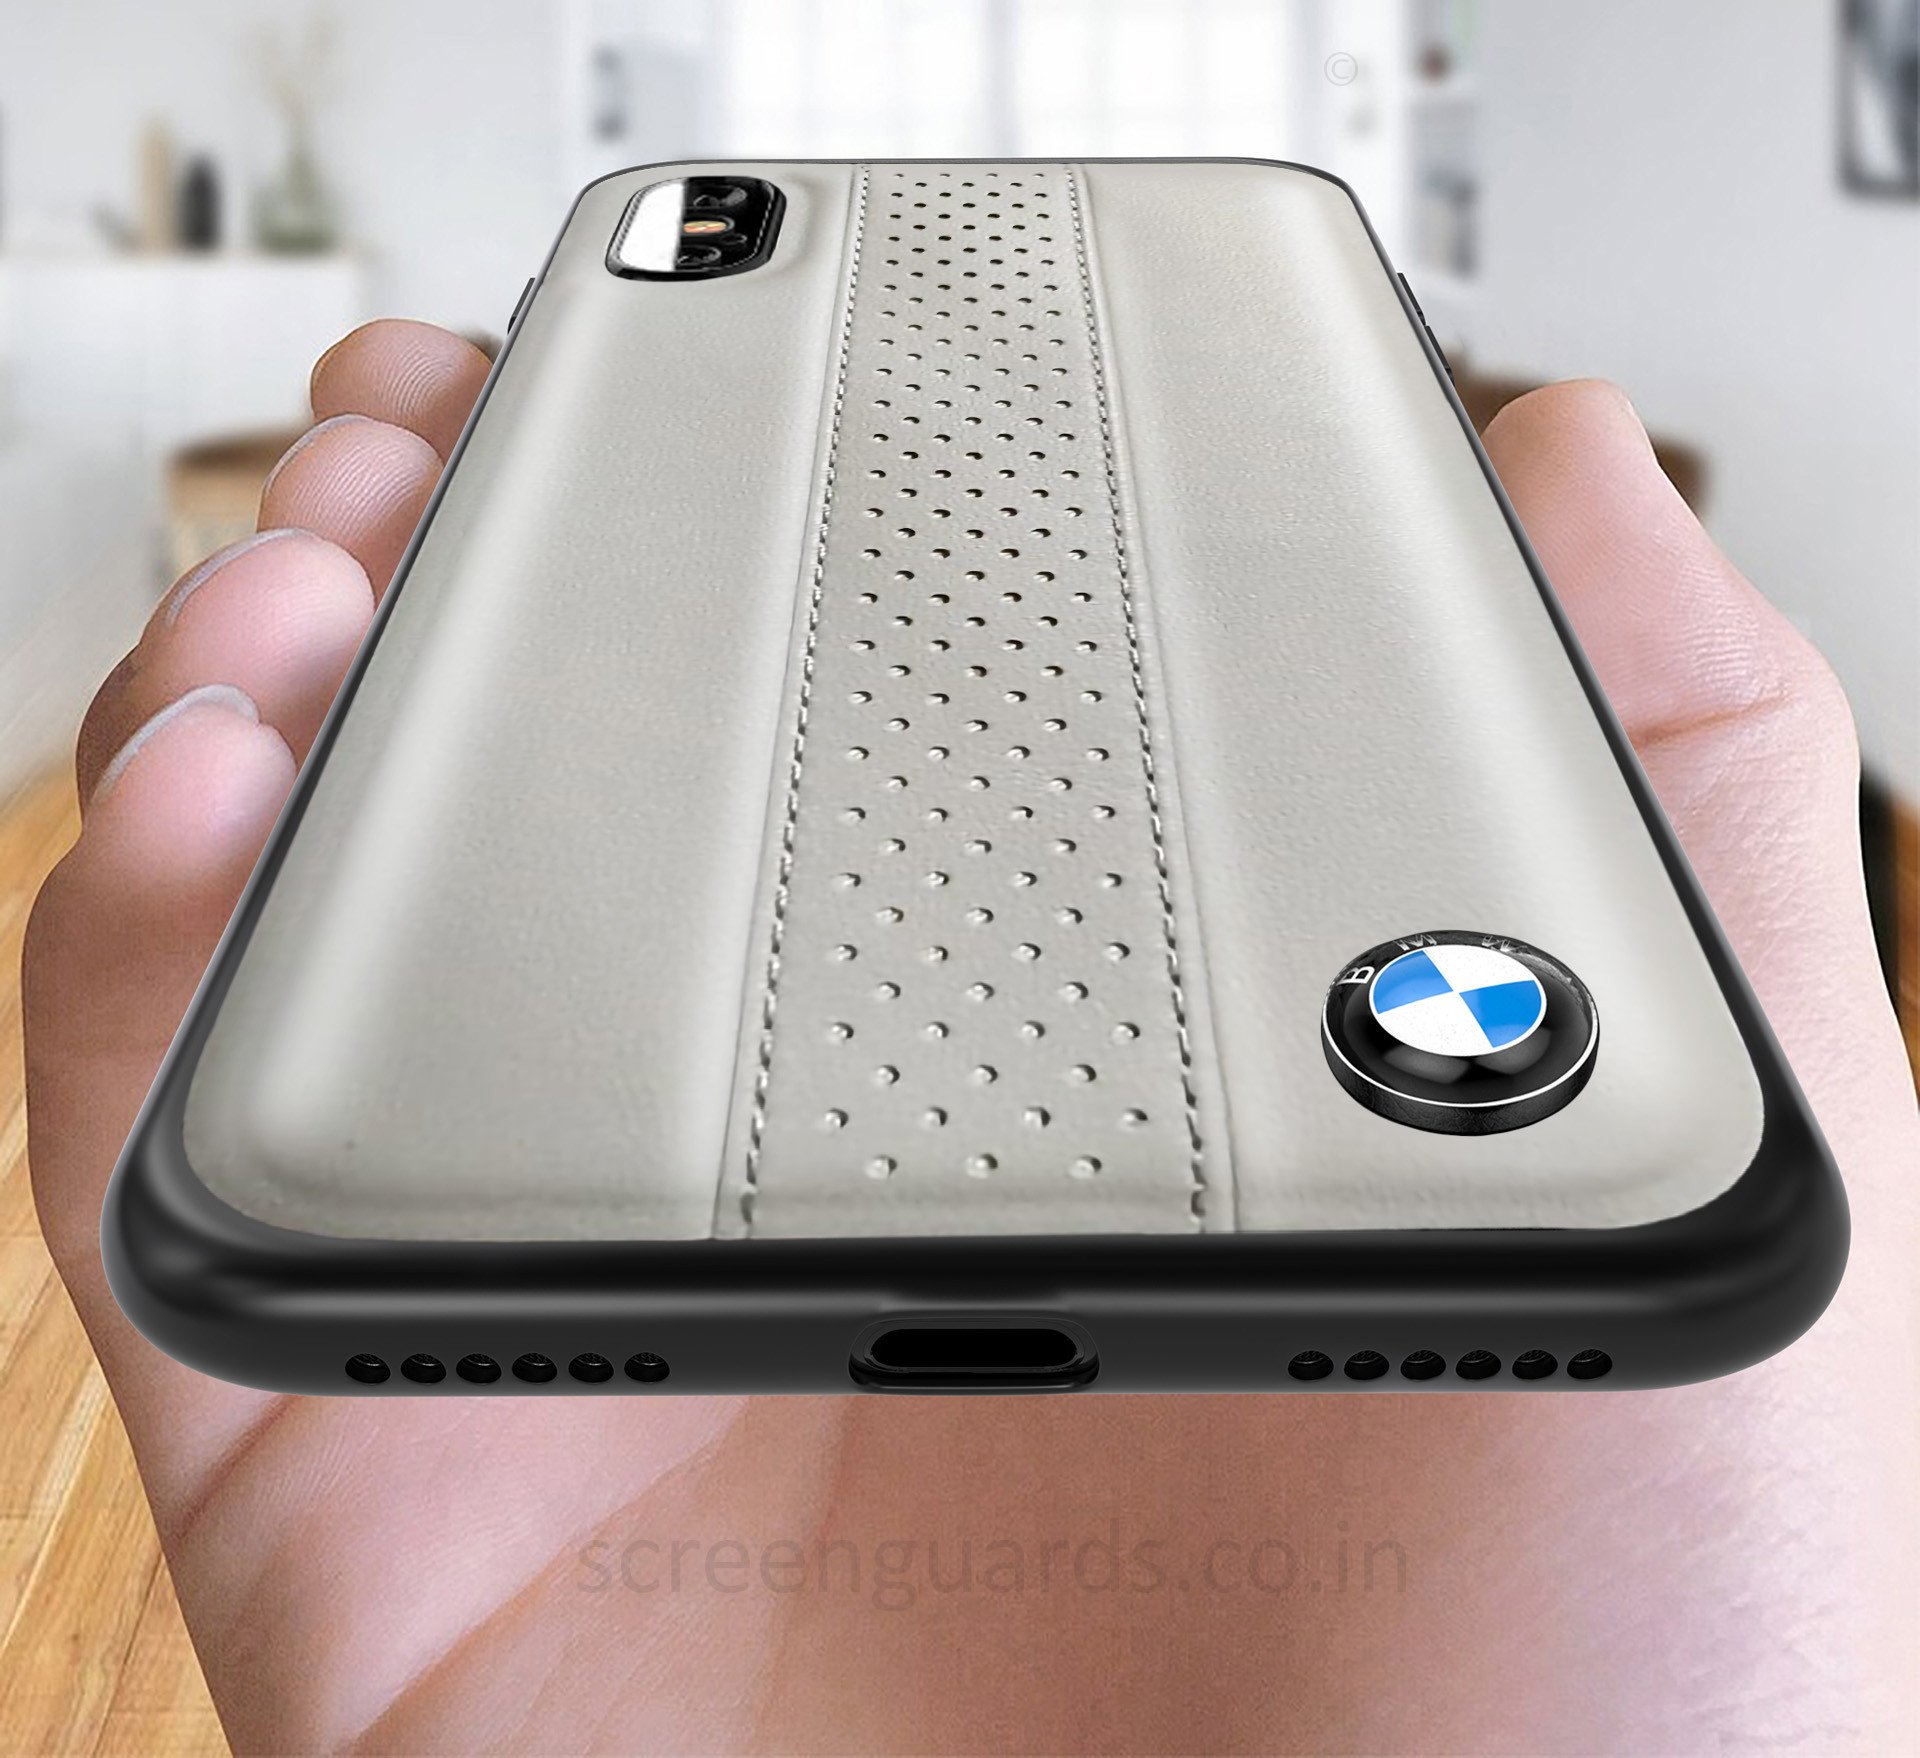 official photos c3a79 495f4 BMW ® iPhone XS MAX M2 COMPETITION freckled leather Back Case